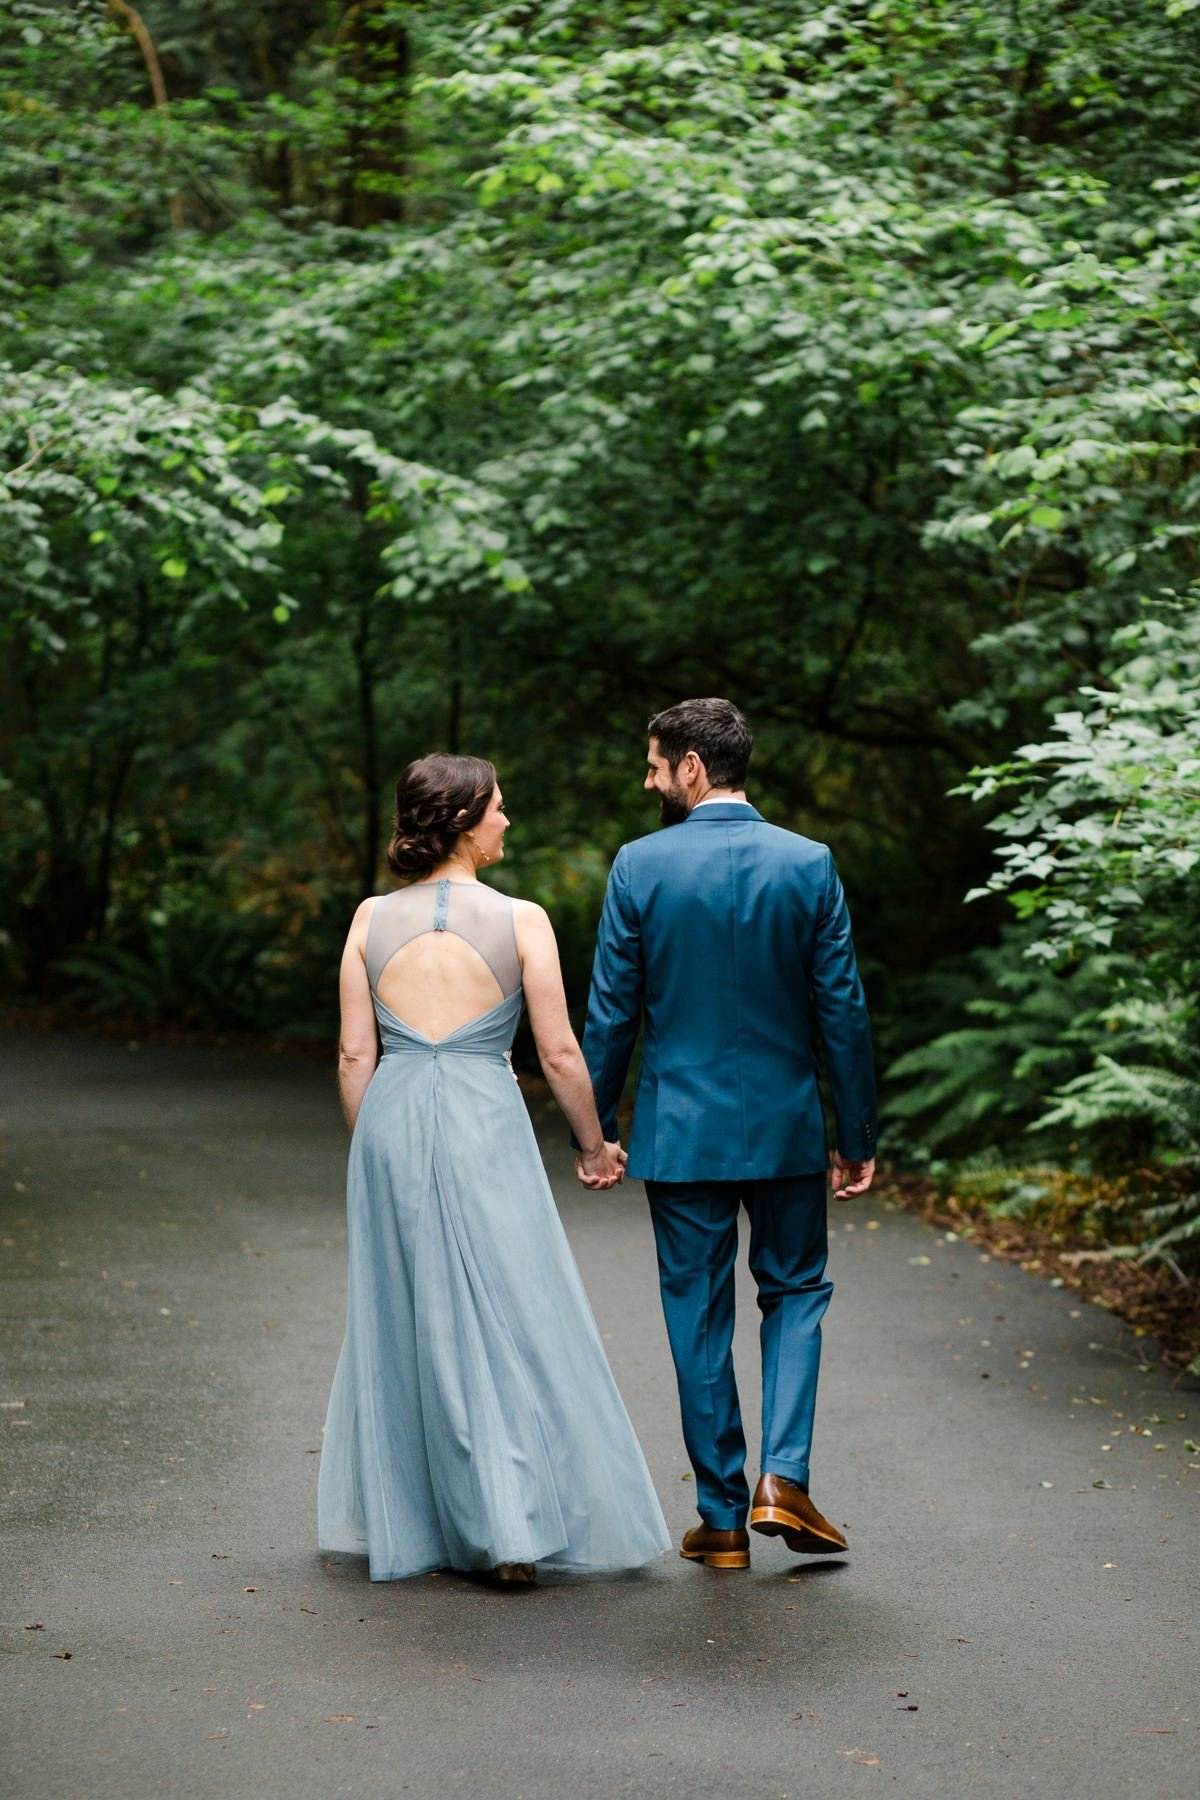 bainbridge-island-washington-wedding-photographer-cameron-zegers-10_1200